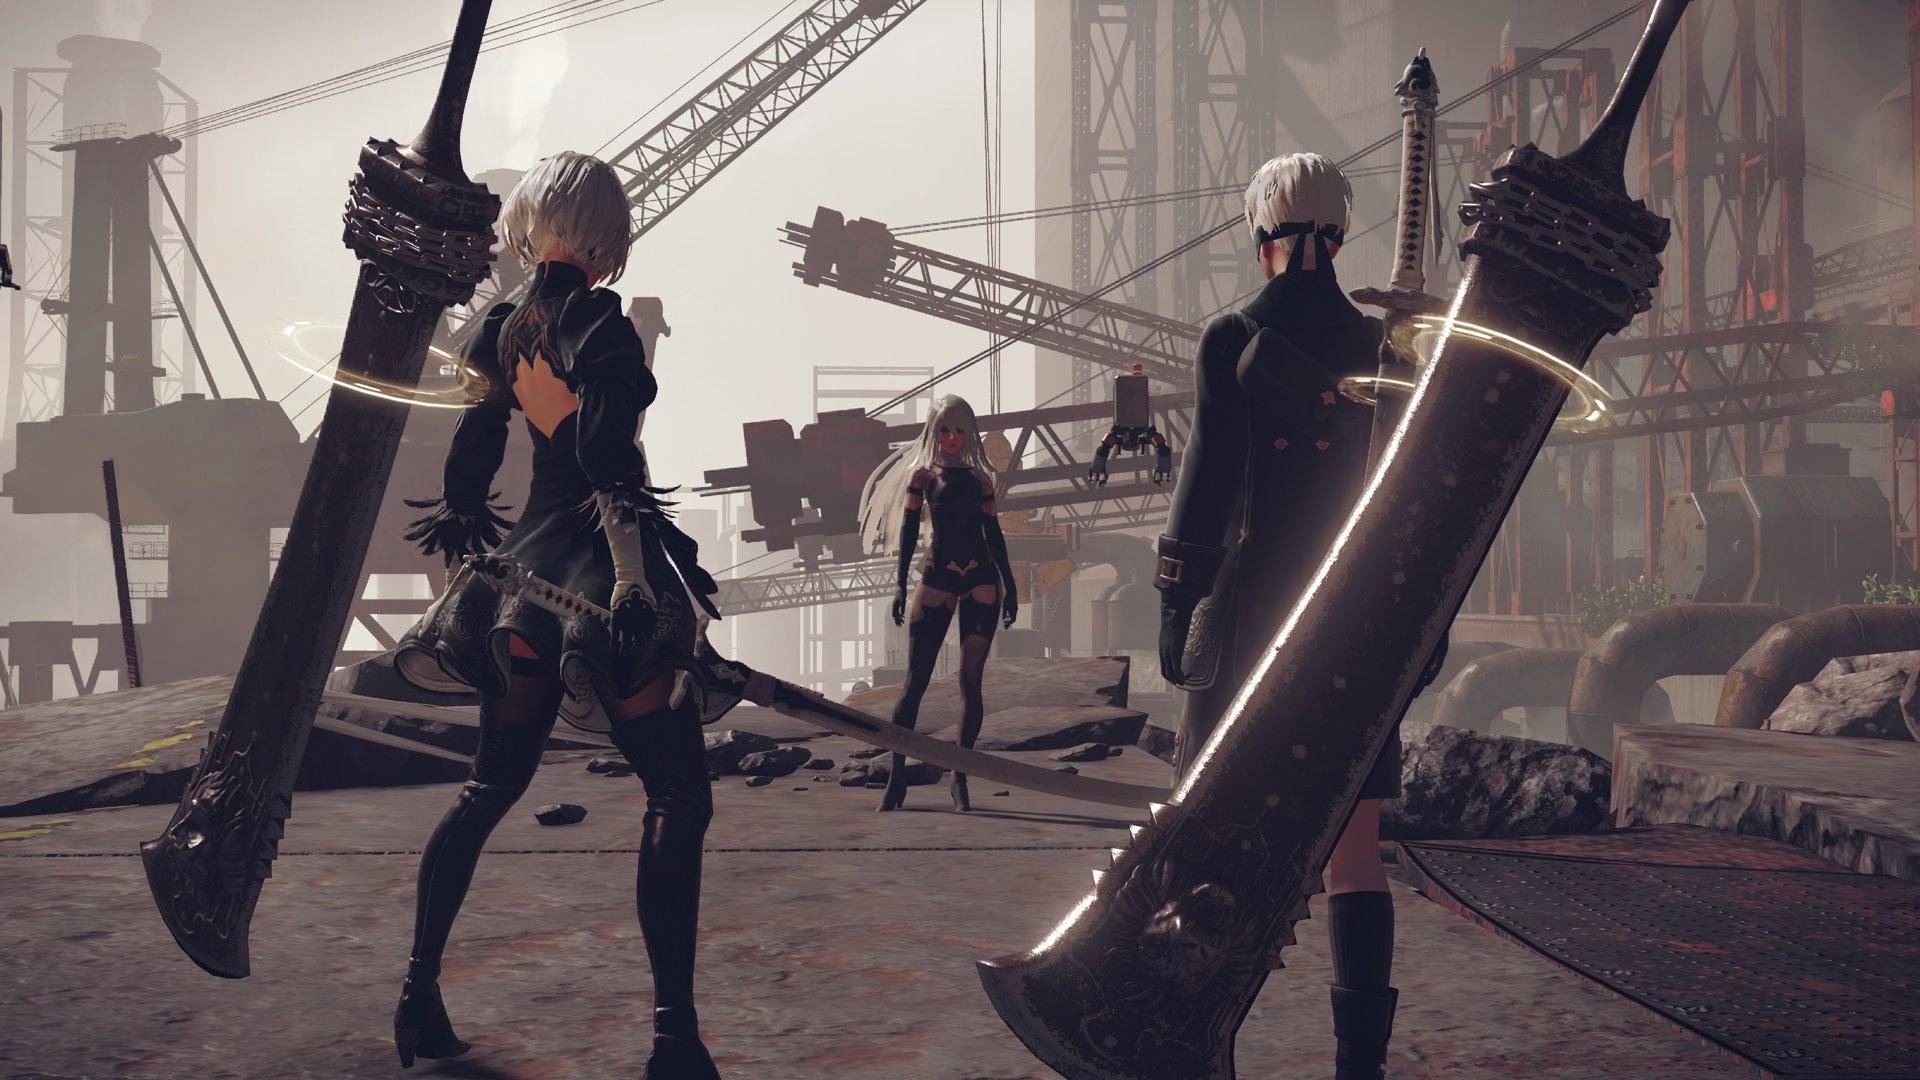 Review Nidhogg 2 Nier Automata And Red Faction Guerrilla